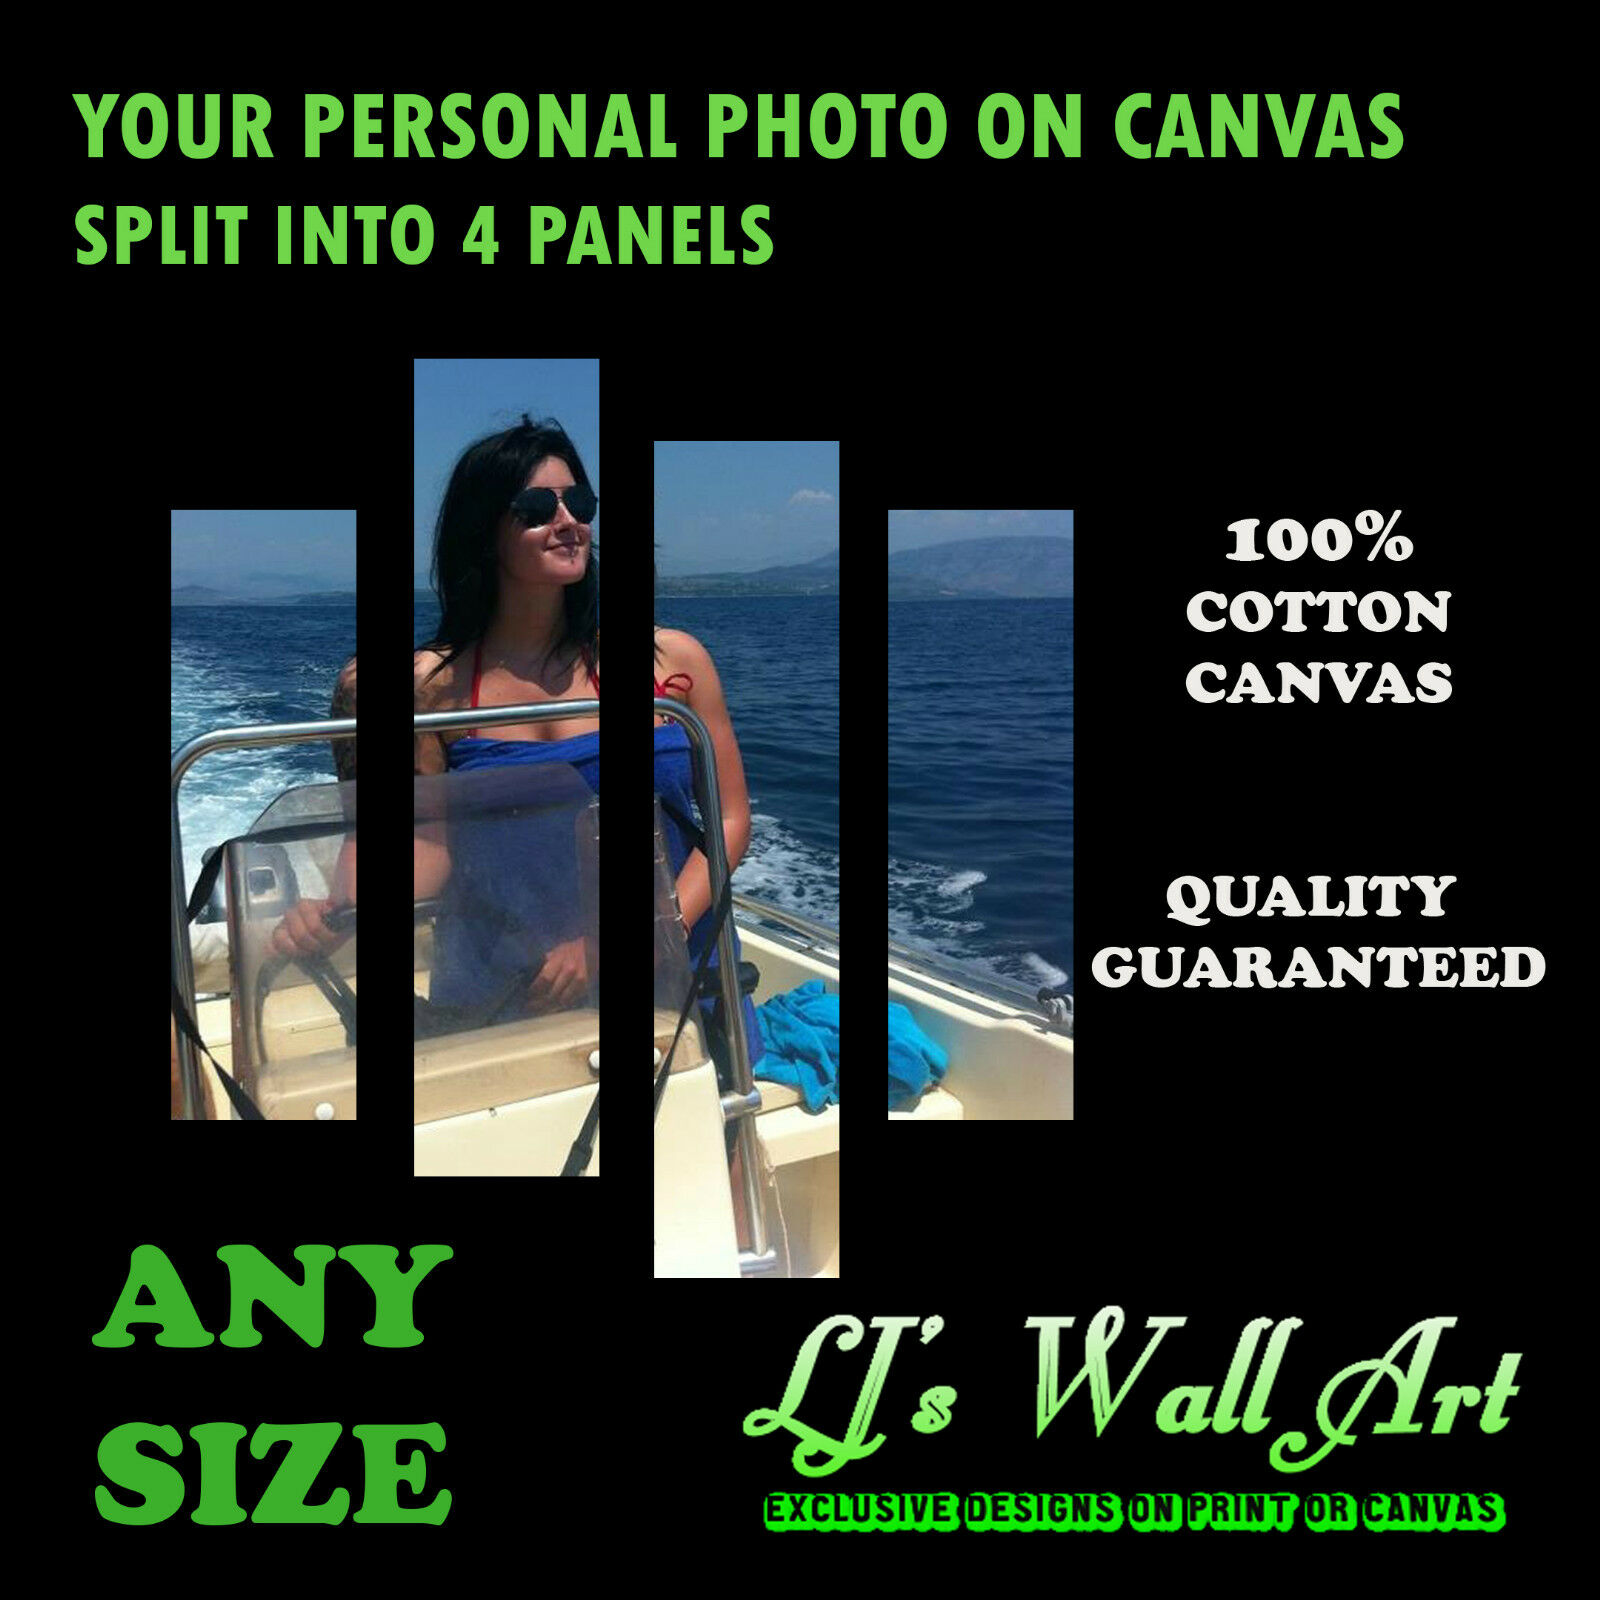 Your Personal Photo Picture on a Box Canvas - Split into 4 Panels - 100% Cotton